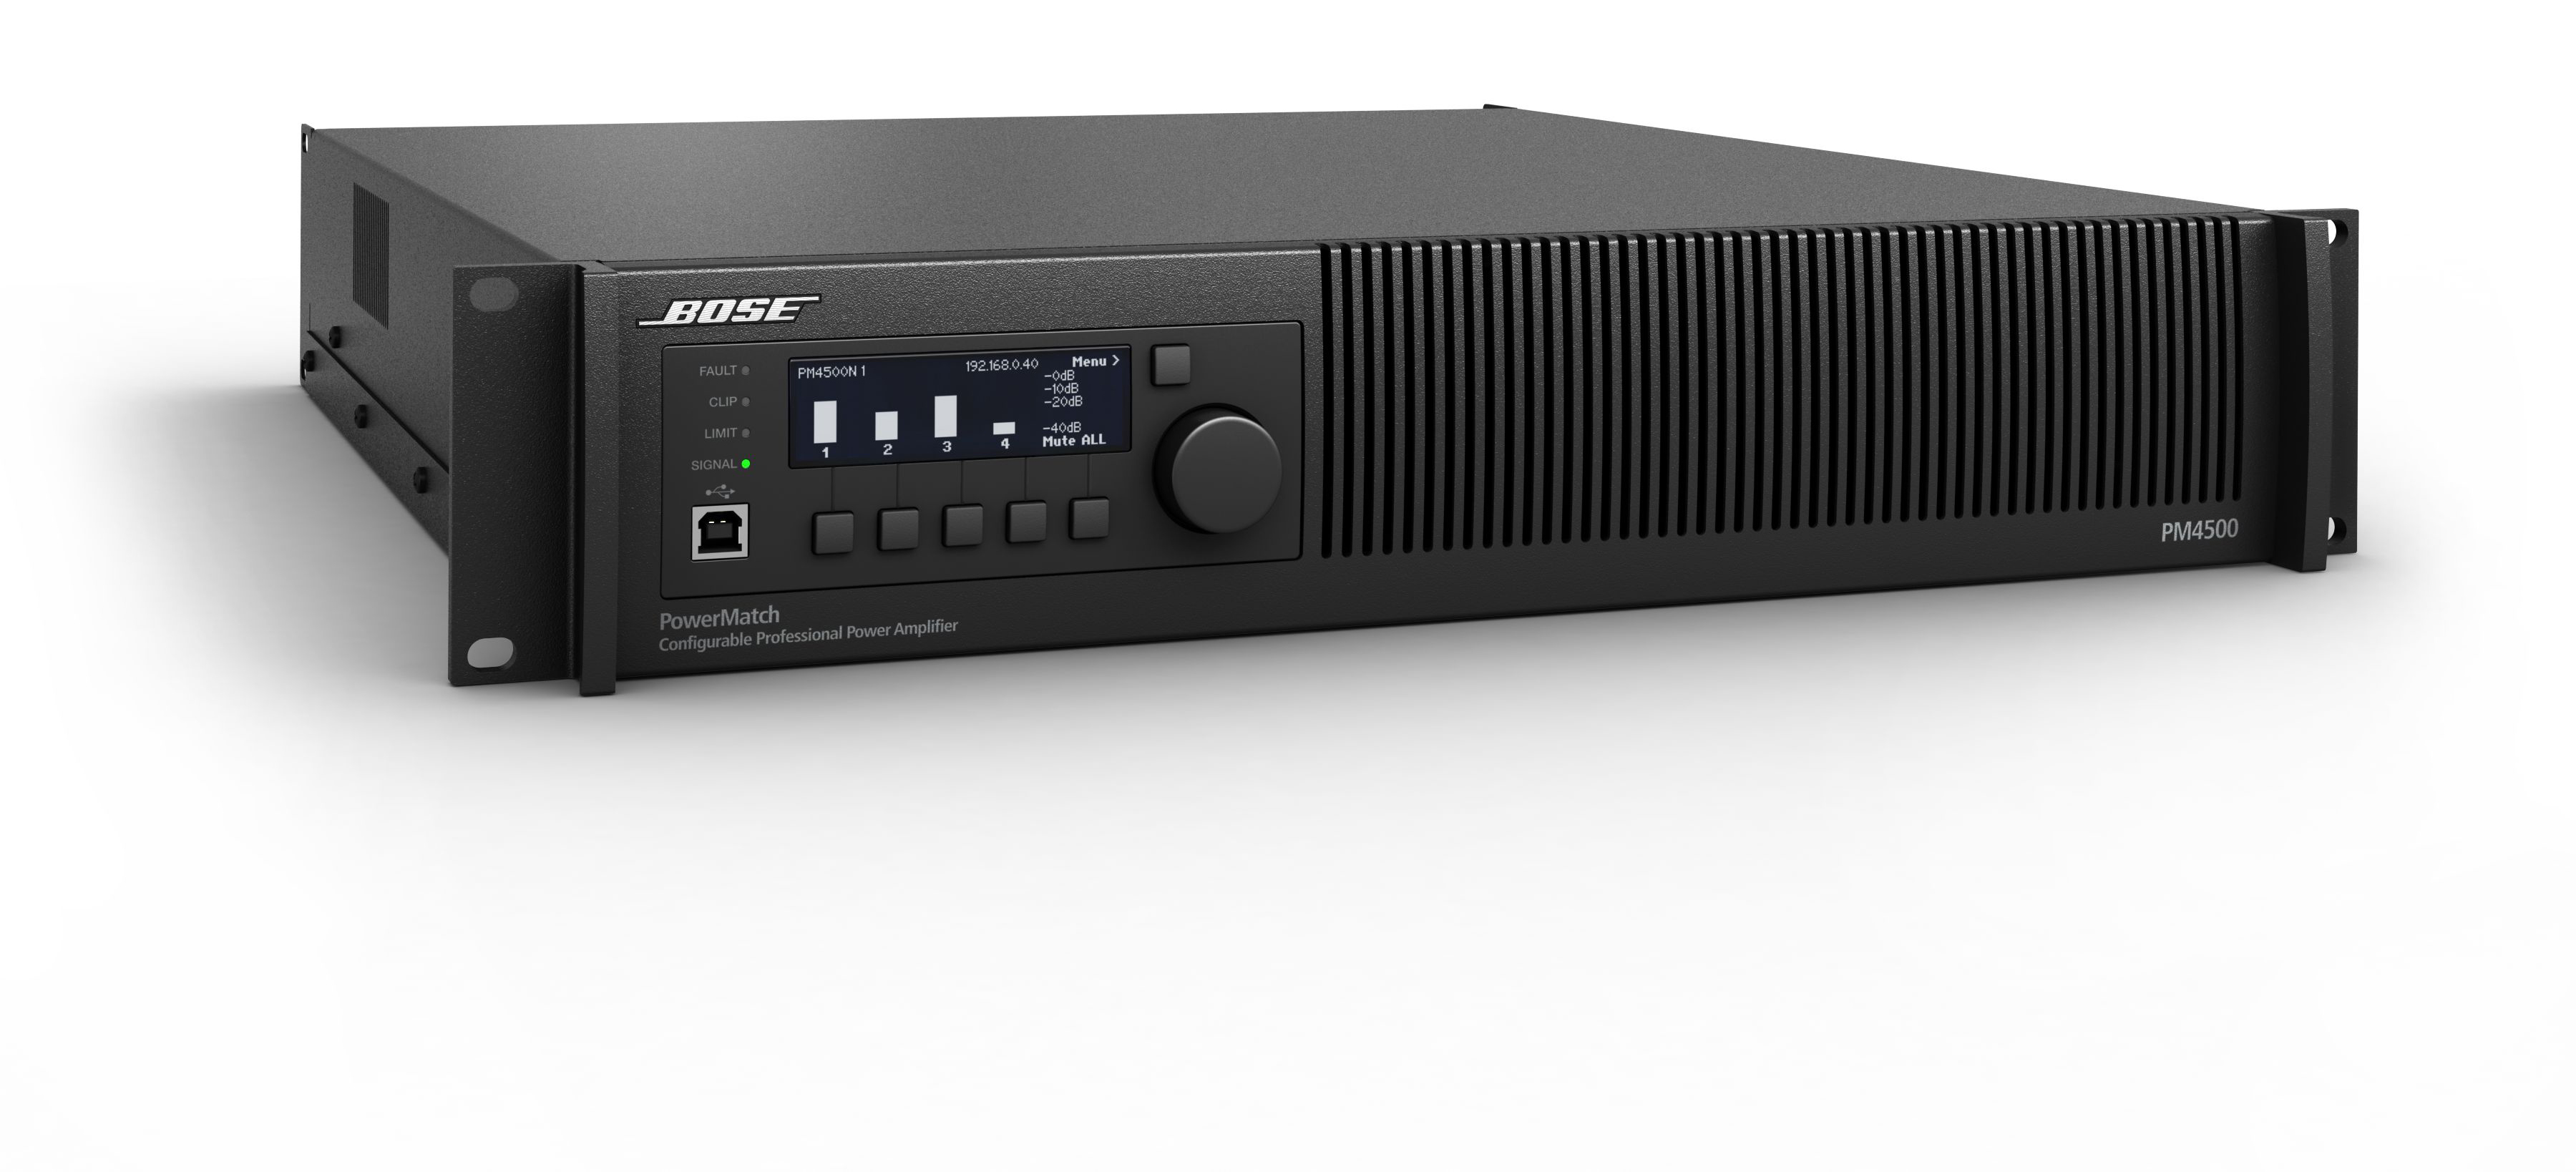 Présentation de l'amplificateur Bose PowerMatch PM4500N ControlSound Division professionnelle